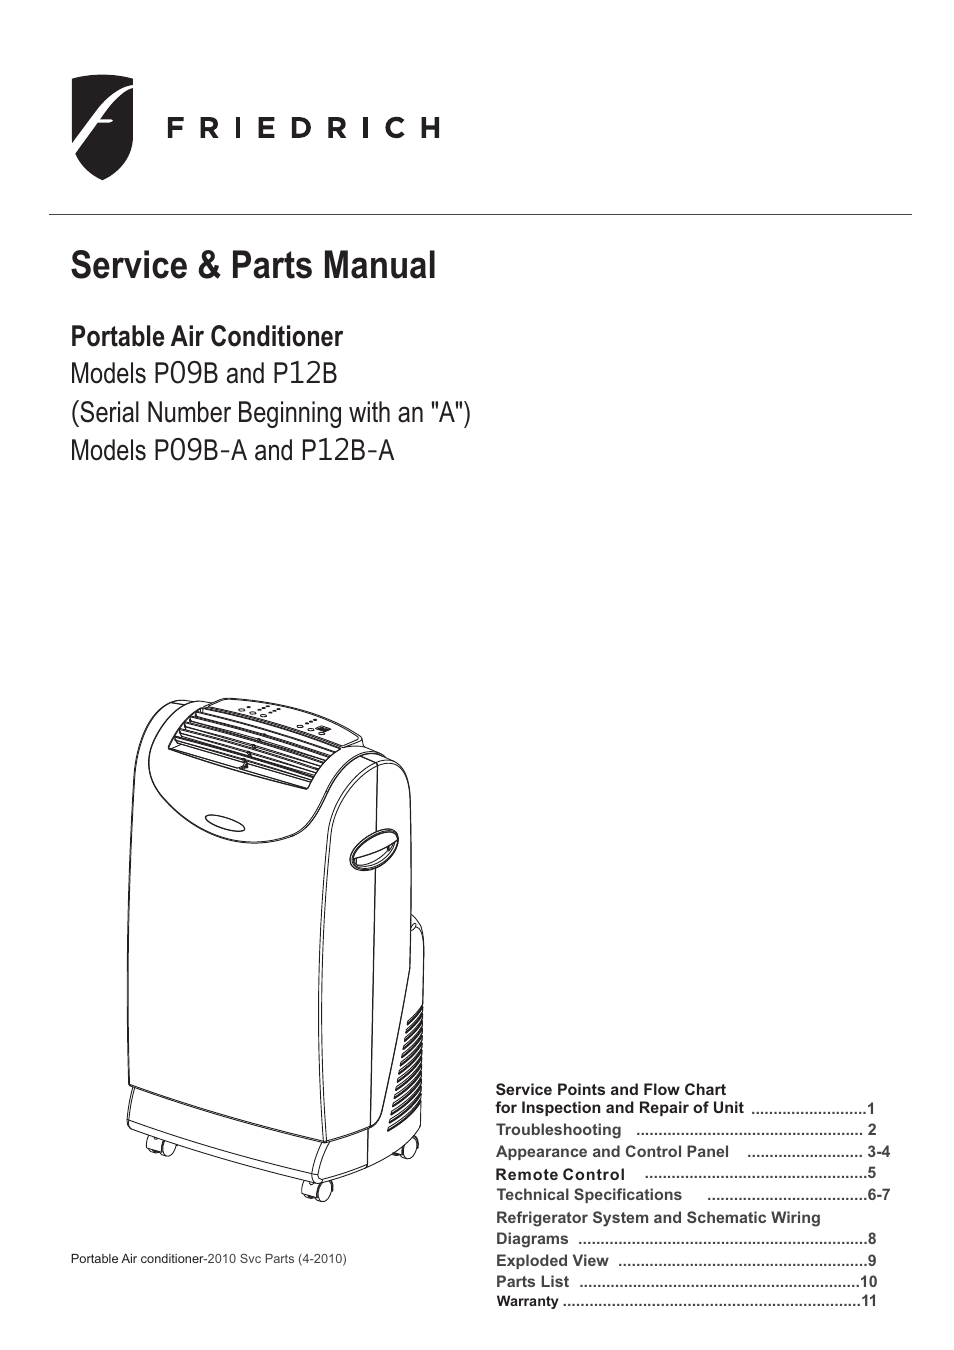 Friedrich Air Conditioners Wiring Diagram Conditioner Control P09b User Manual 12 Pages Also For P12bfriedrich 18